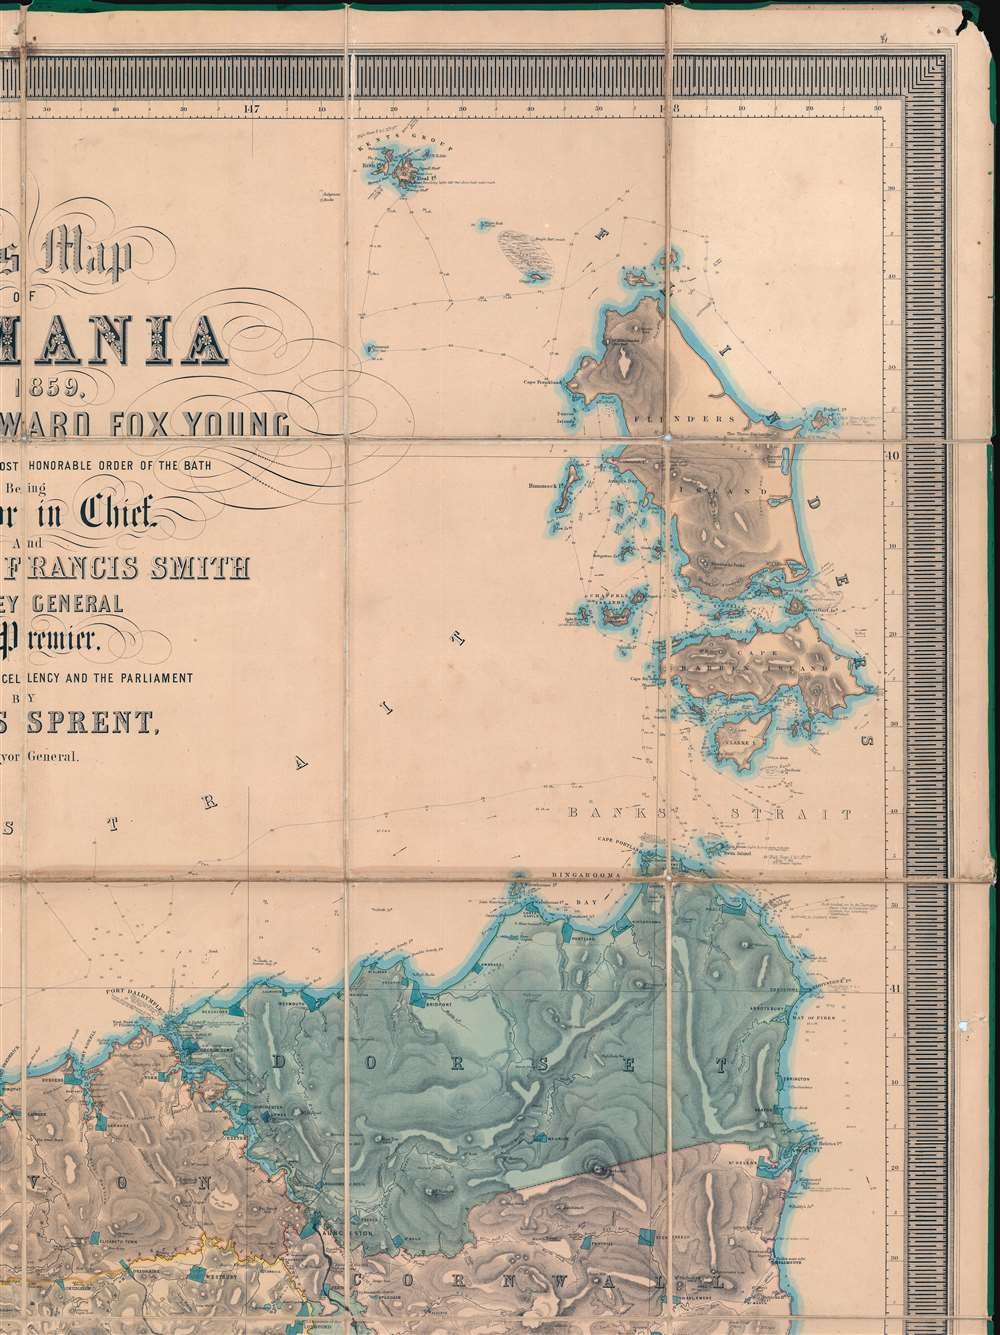 This Map of Tasmania in 1859, Sir Henry Edward Fox Young Knight Companion of the Most Honorable Order of the Bath Being Governor in Chief, and teh Honble. Francis Smigh Attorney General being Premier is dedicated to his Excellency and the Parliament by James Sprent, Surveyor General. - Alternate View 3